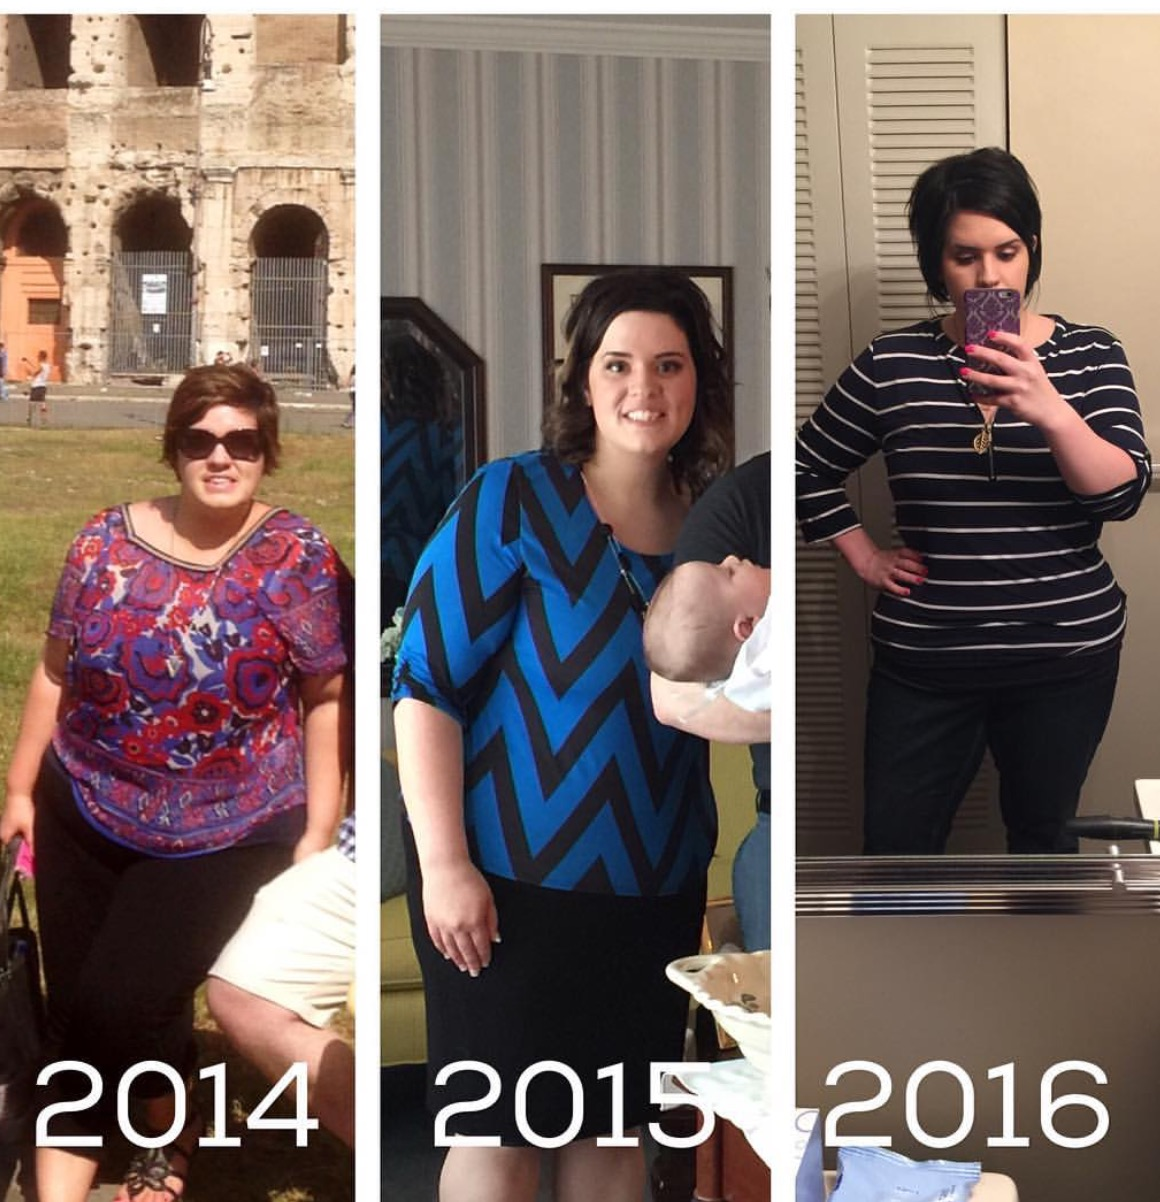 Great success story! Read before and after fitness transformation stories from women and men who hit weight loss goals and got THAT BODY with training and meal prep. Find inspiration, motivation, and workout tips | Alex Lost 78 Lbs Fighting Sugar Cravings and Getting her PCOS under Control